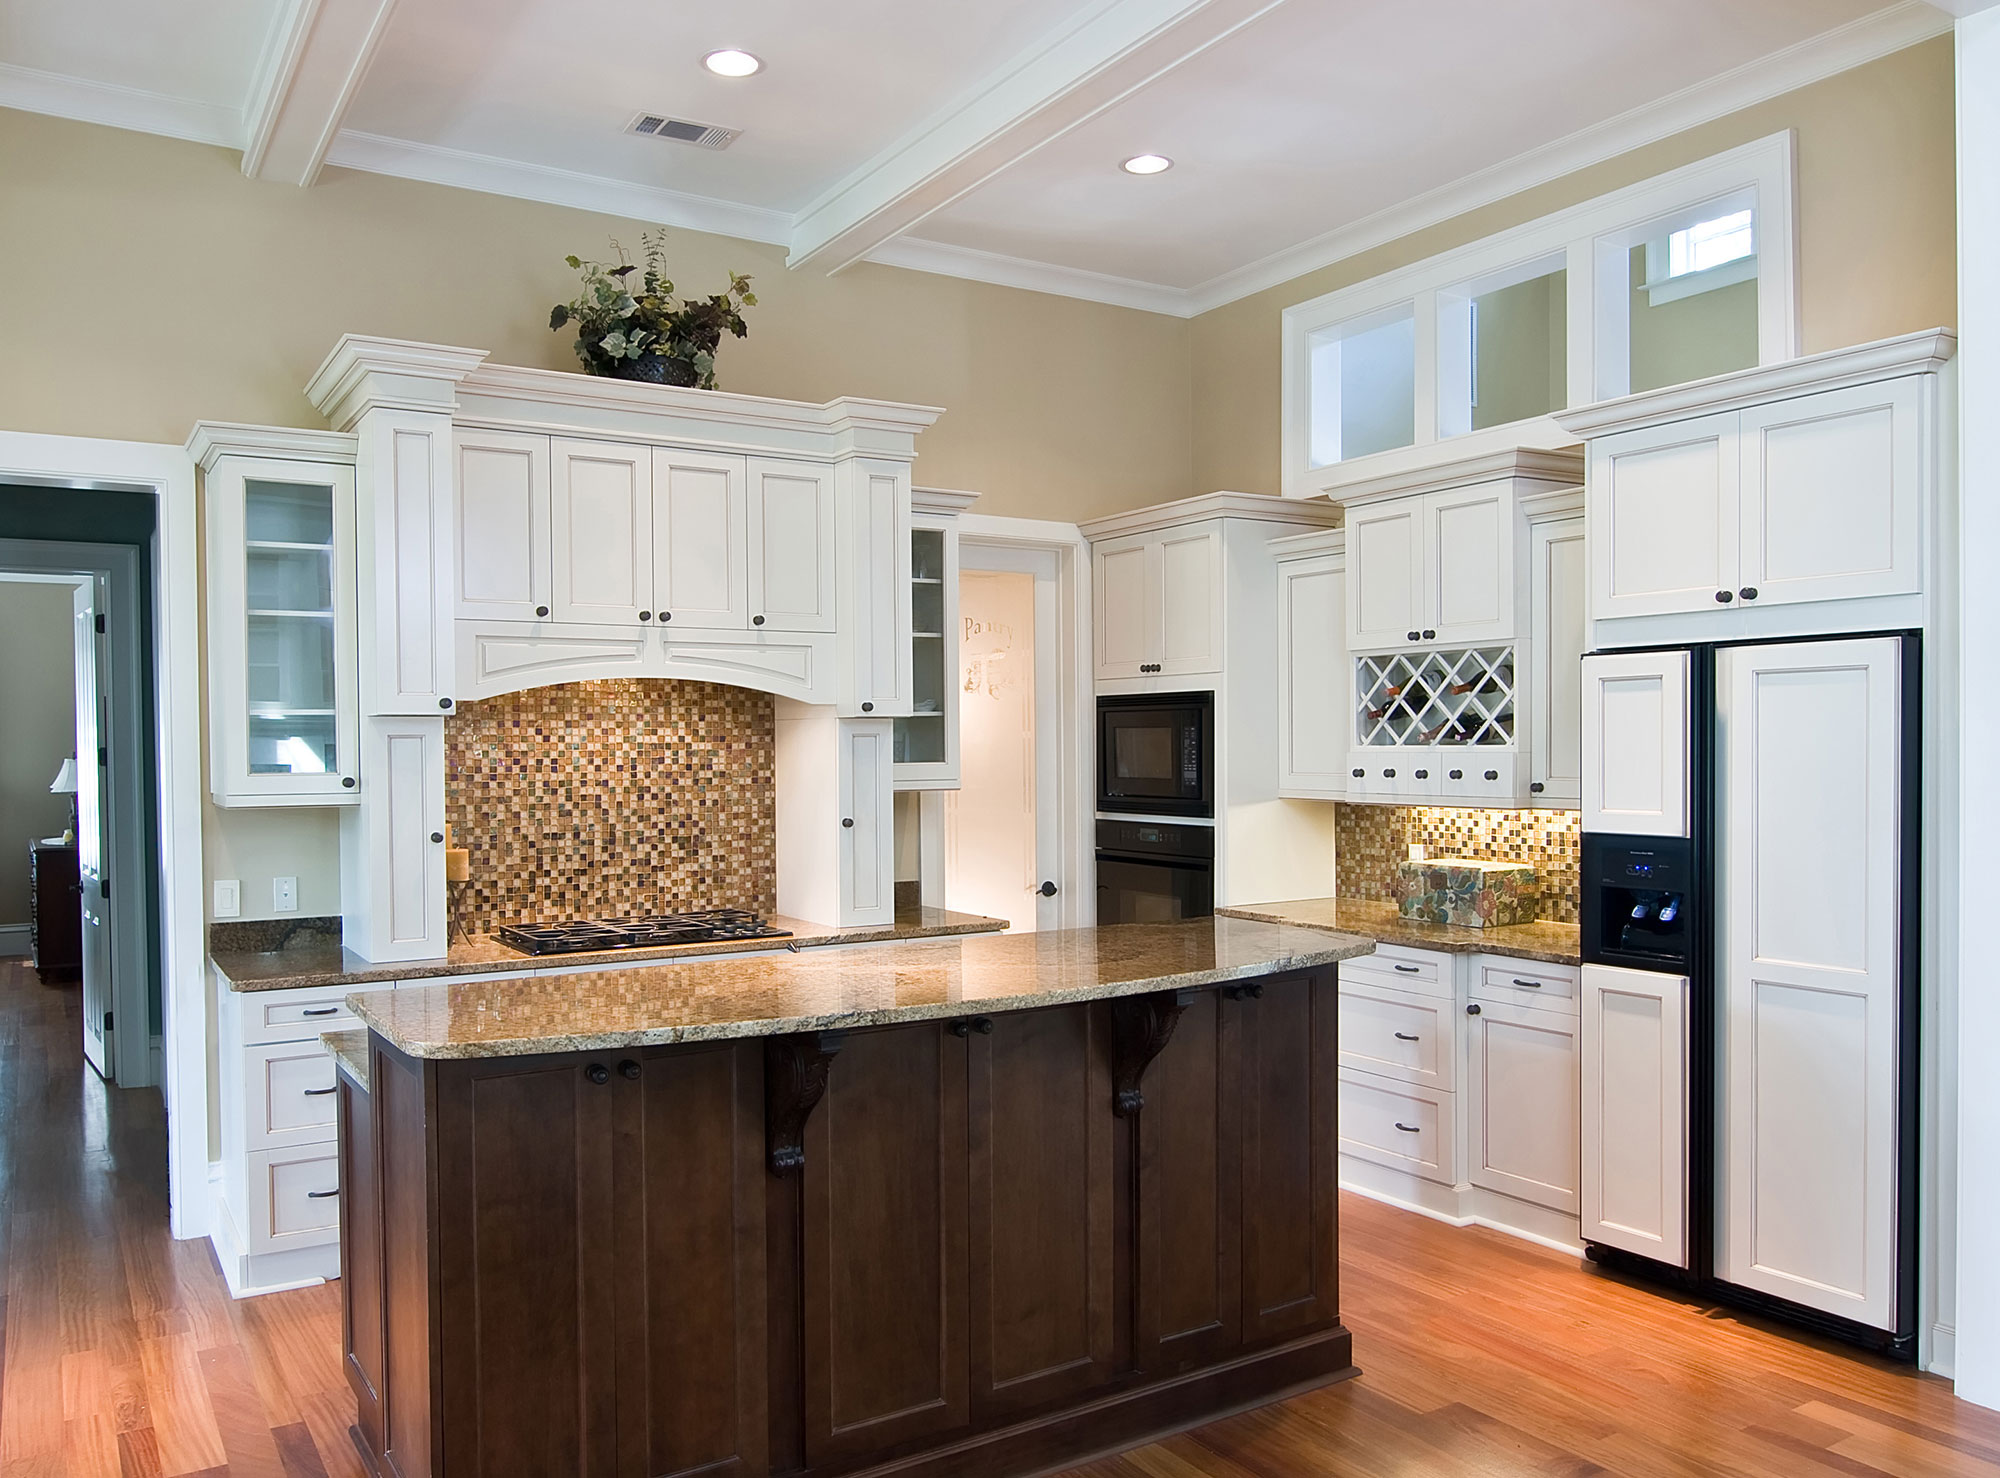 Custom Cabinets Near Me, Local Remodeling Contractors